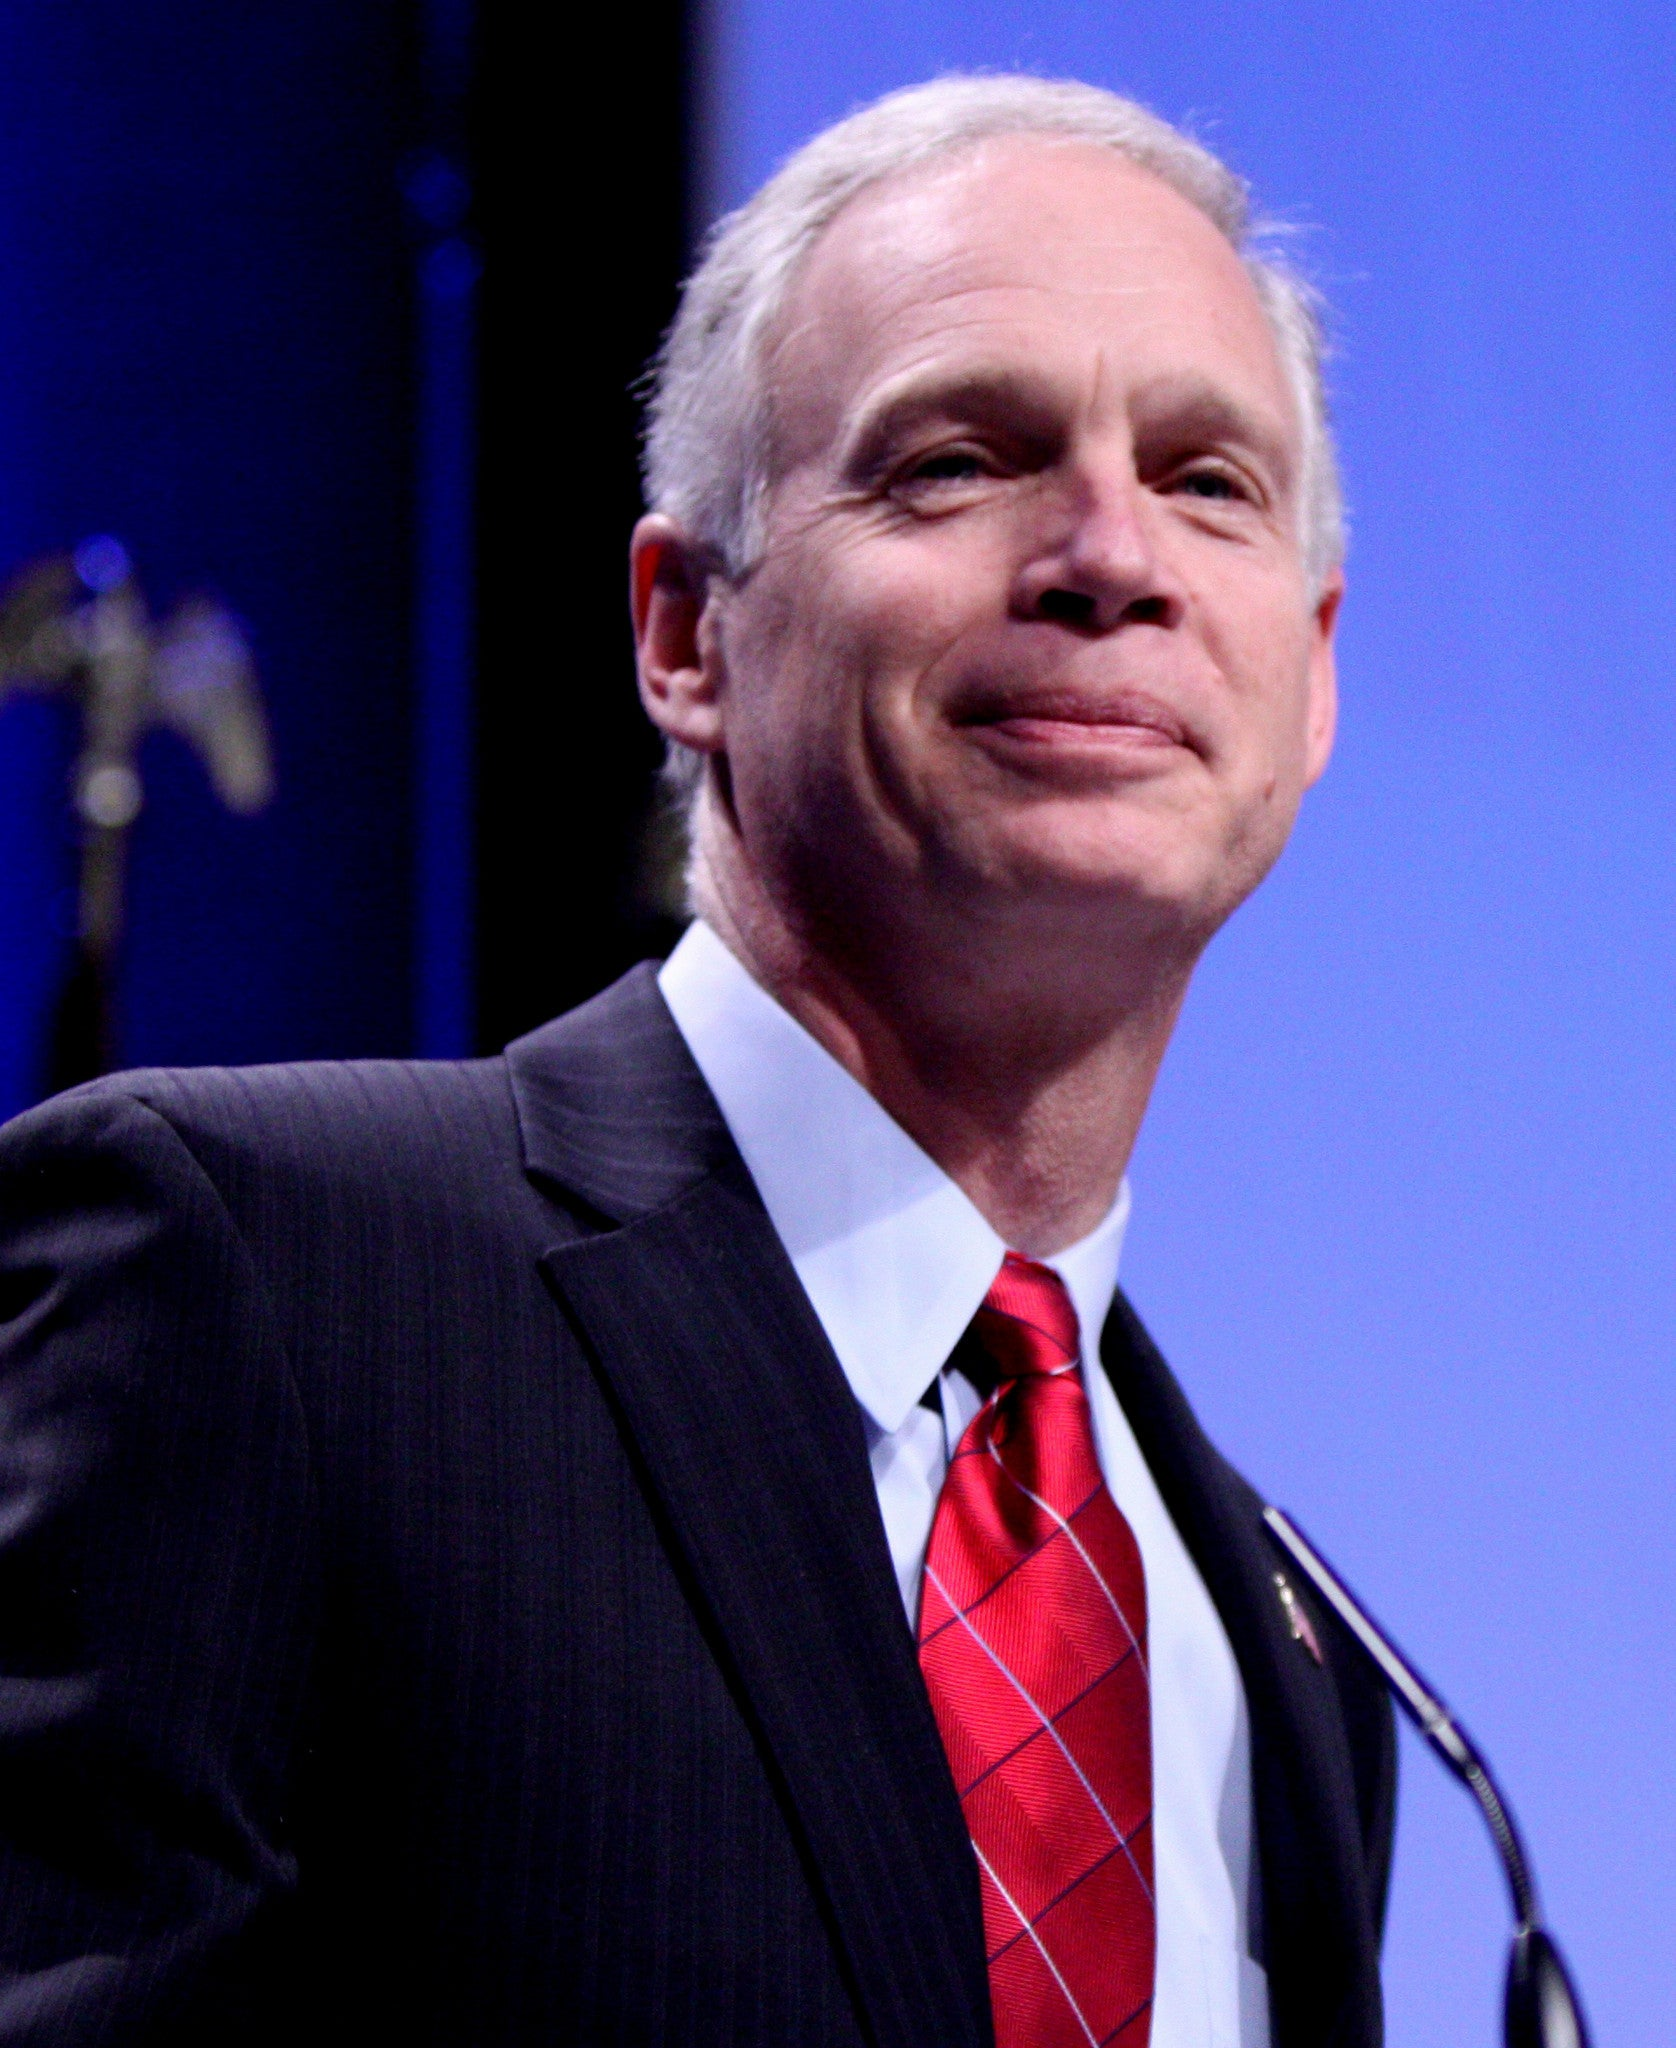 Wisconsin Senator Ron Johnson forces FDA to explain deadly e-cig regulations